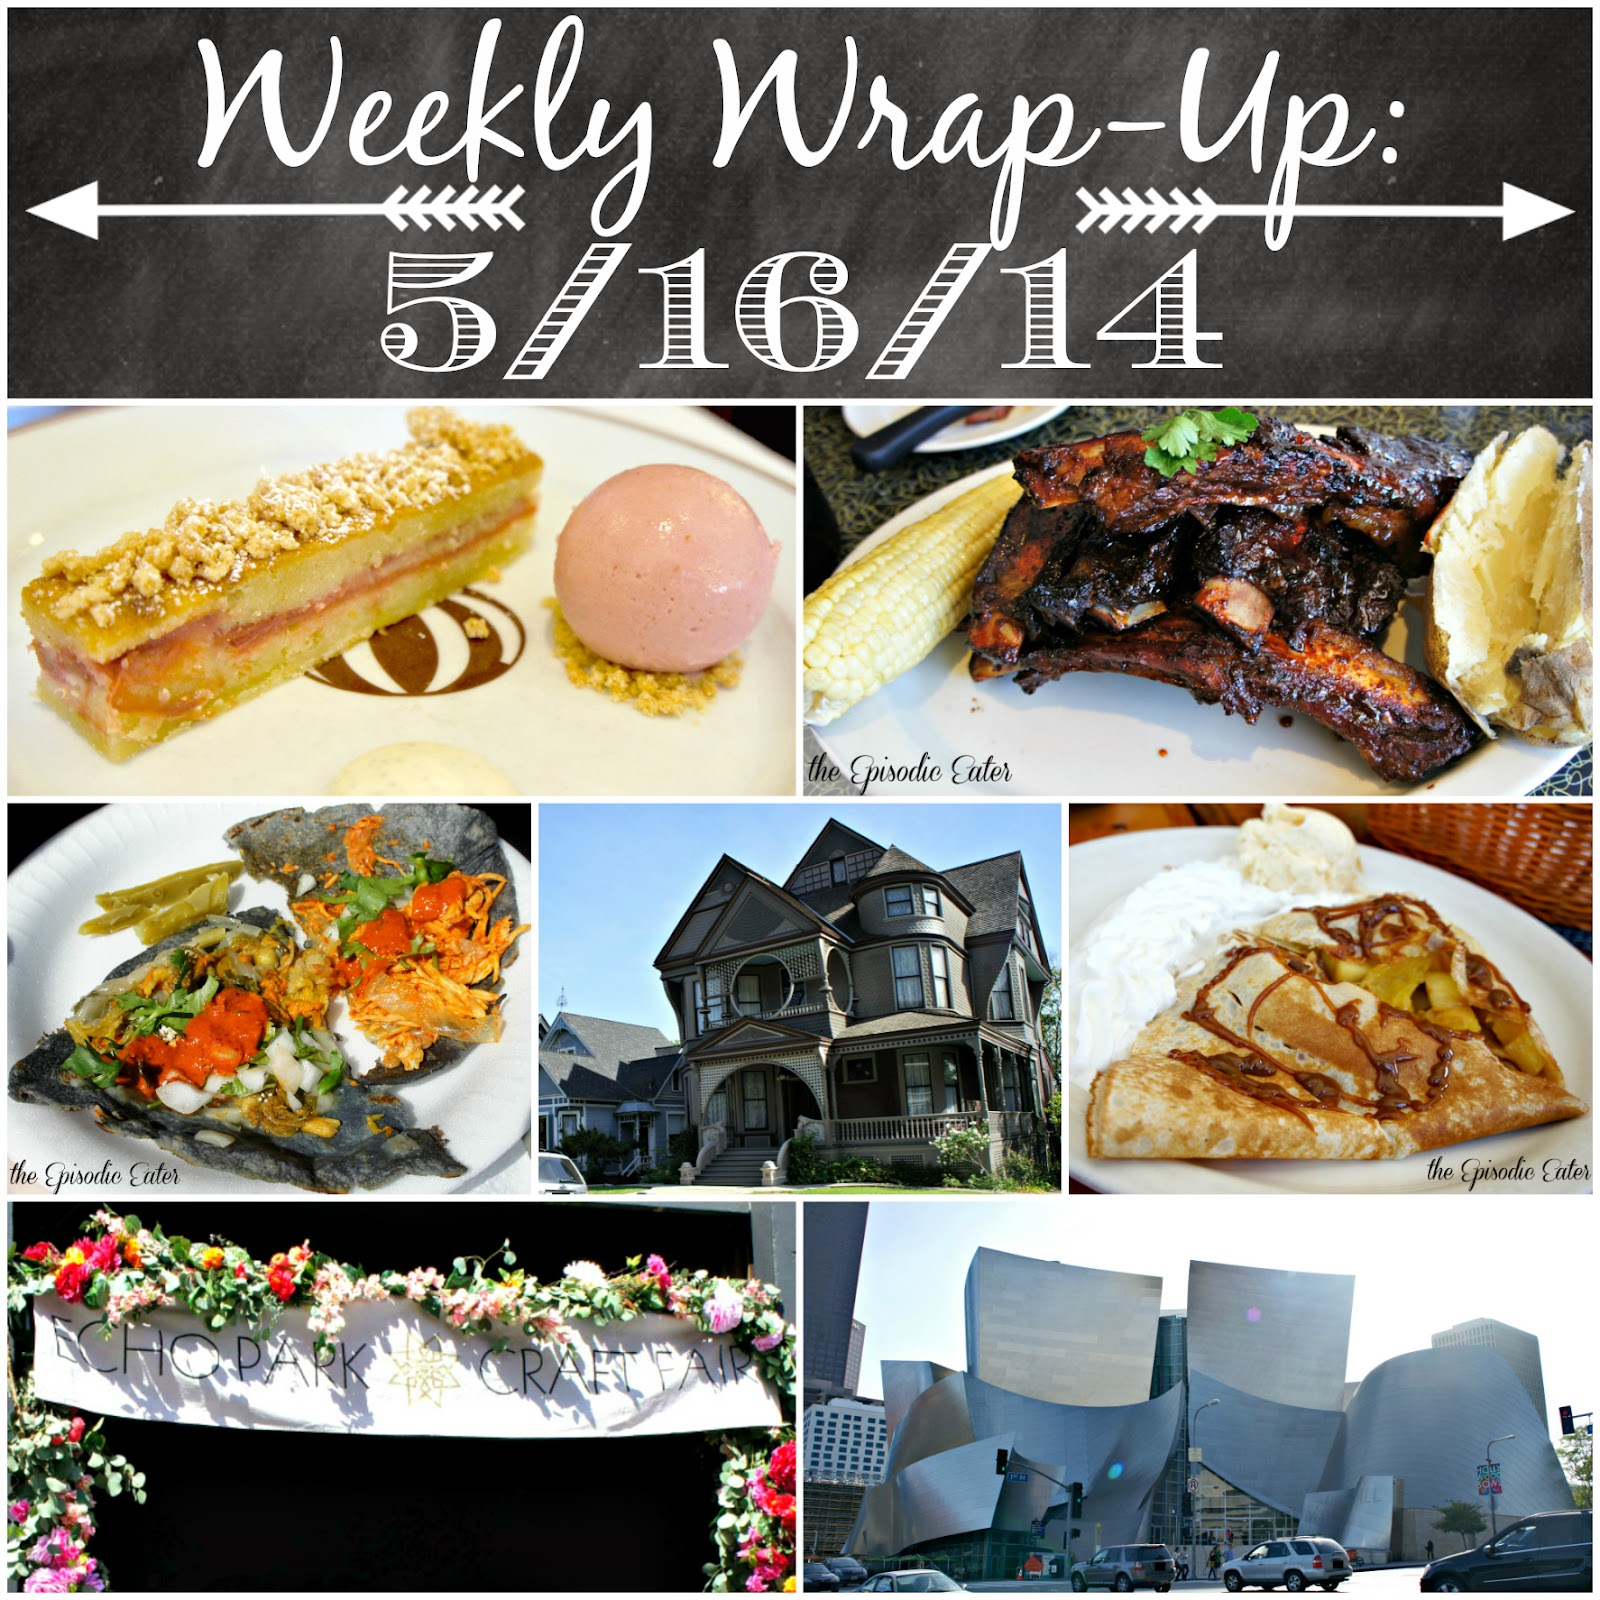 Weekly Wrap-Up: Exploring L.A. on Diane's Vintage Zest!